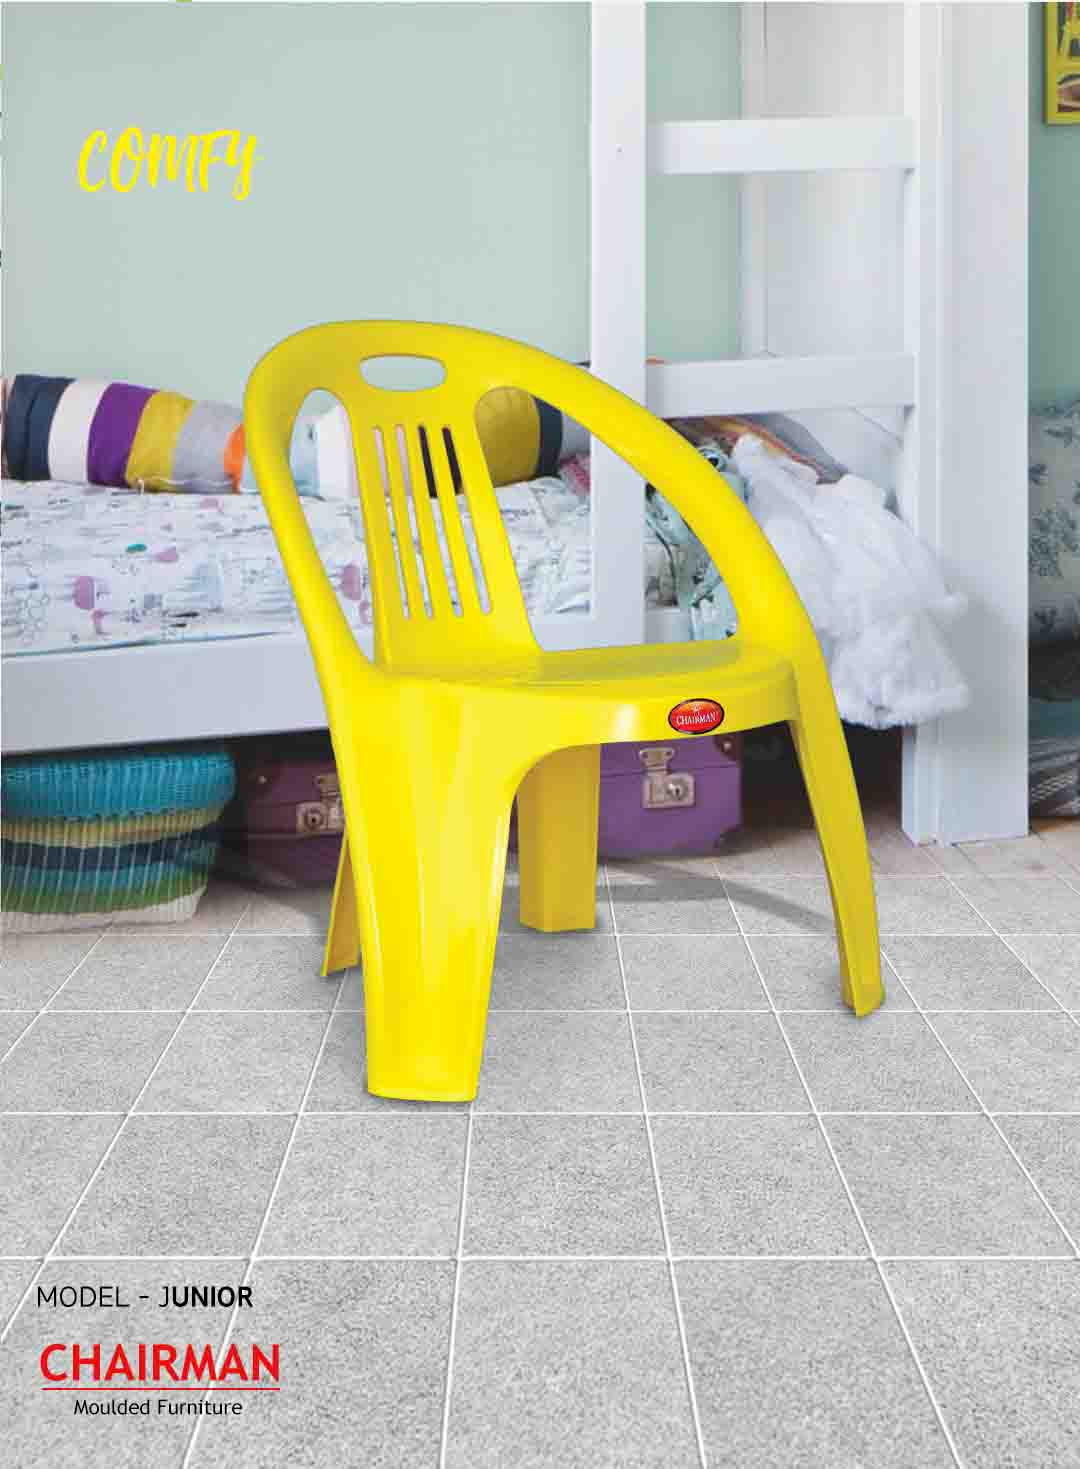 Moulded plastic furniture